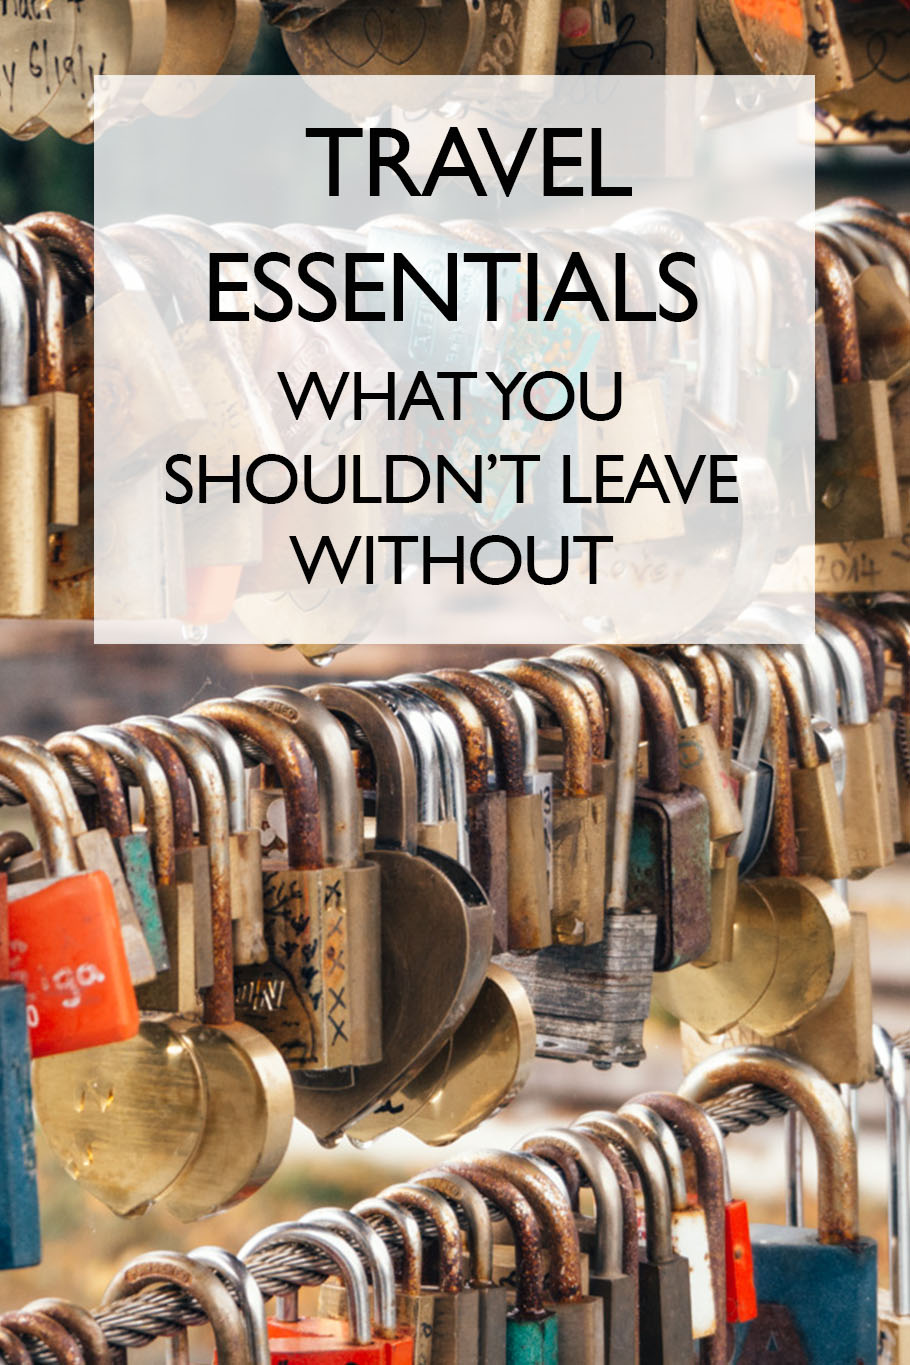 Travel Essentials: What You Shouldn't Leave Without